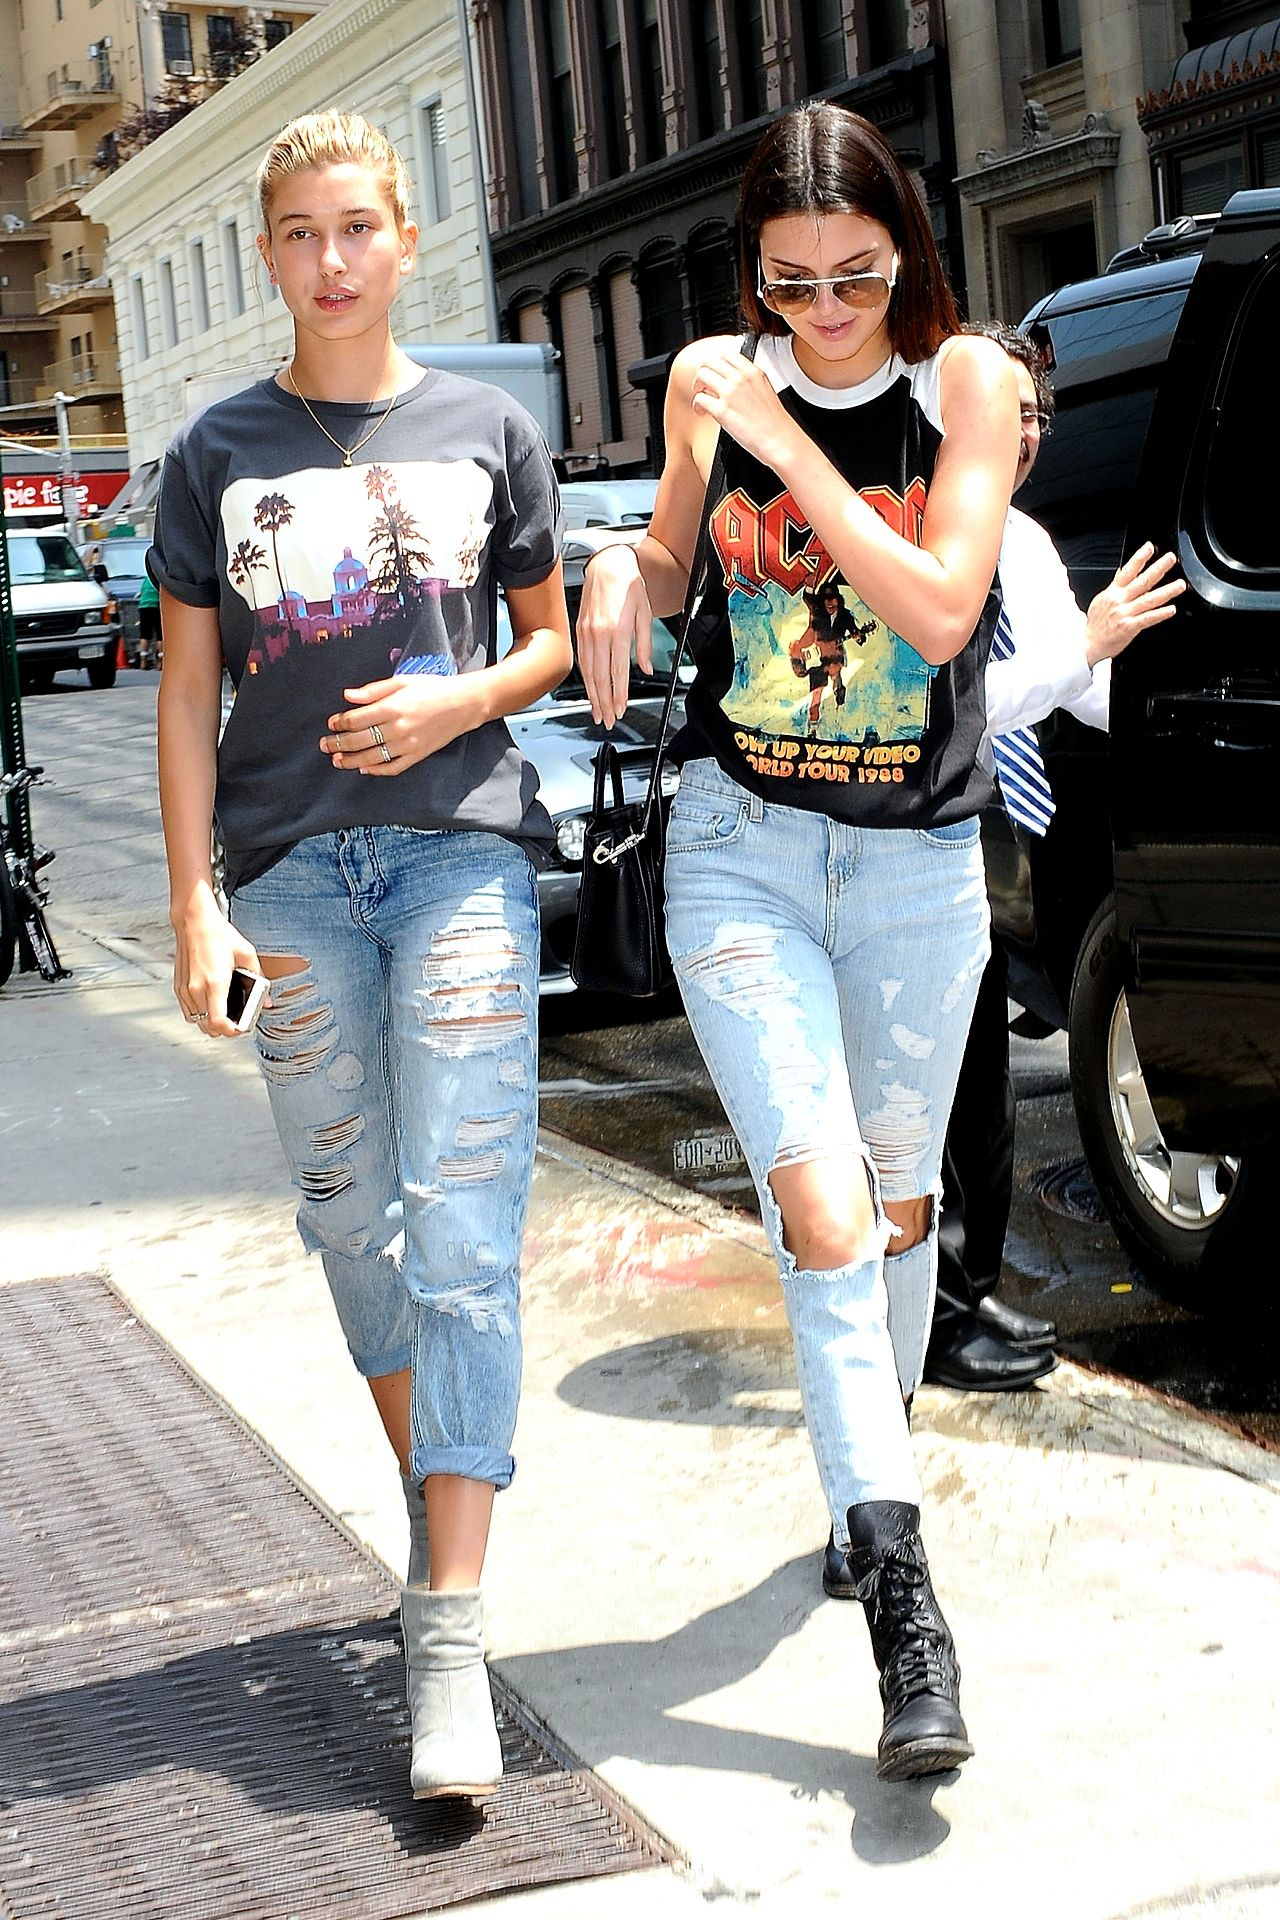 Graphic tee boyfriend jeans boots | s/s style | Pinterest | Hailey baldwin Soho and Boyfriend ...